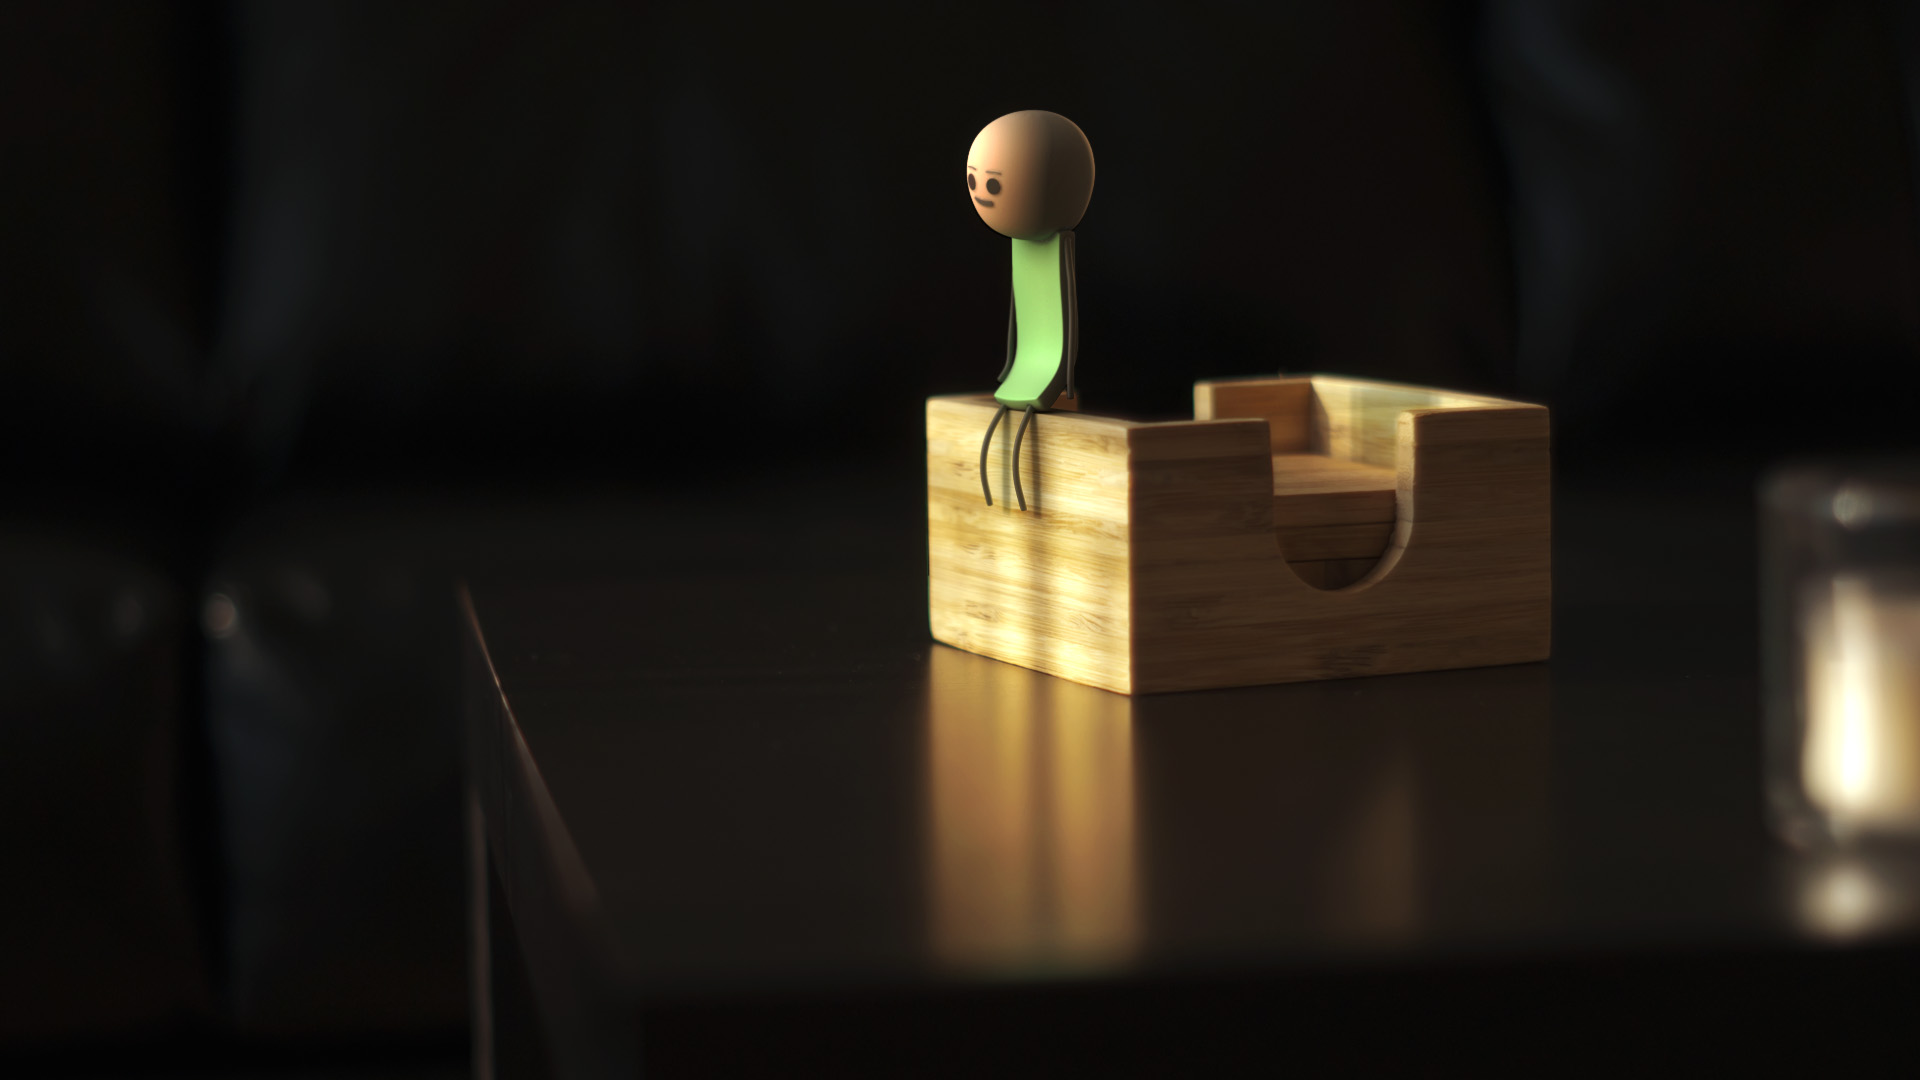 A 3D character from Cyanide and Happiness composited onto a photo